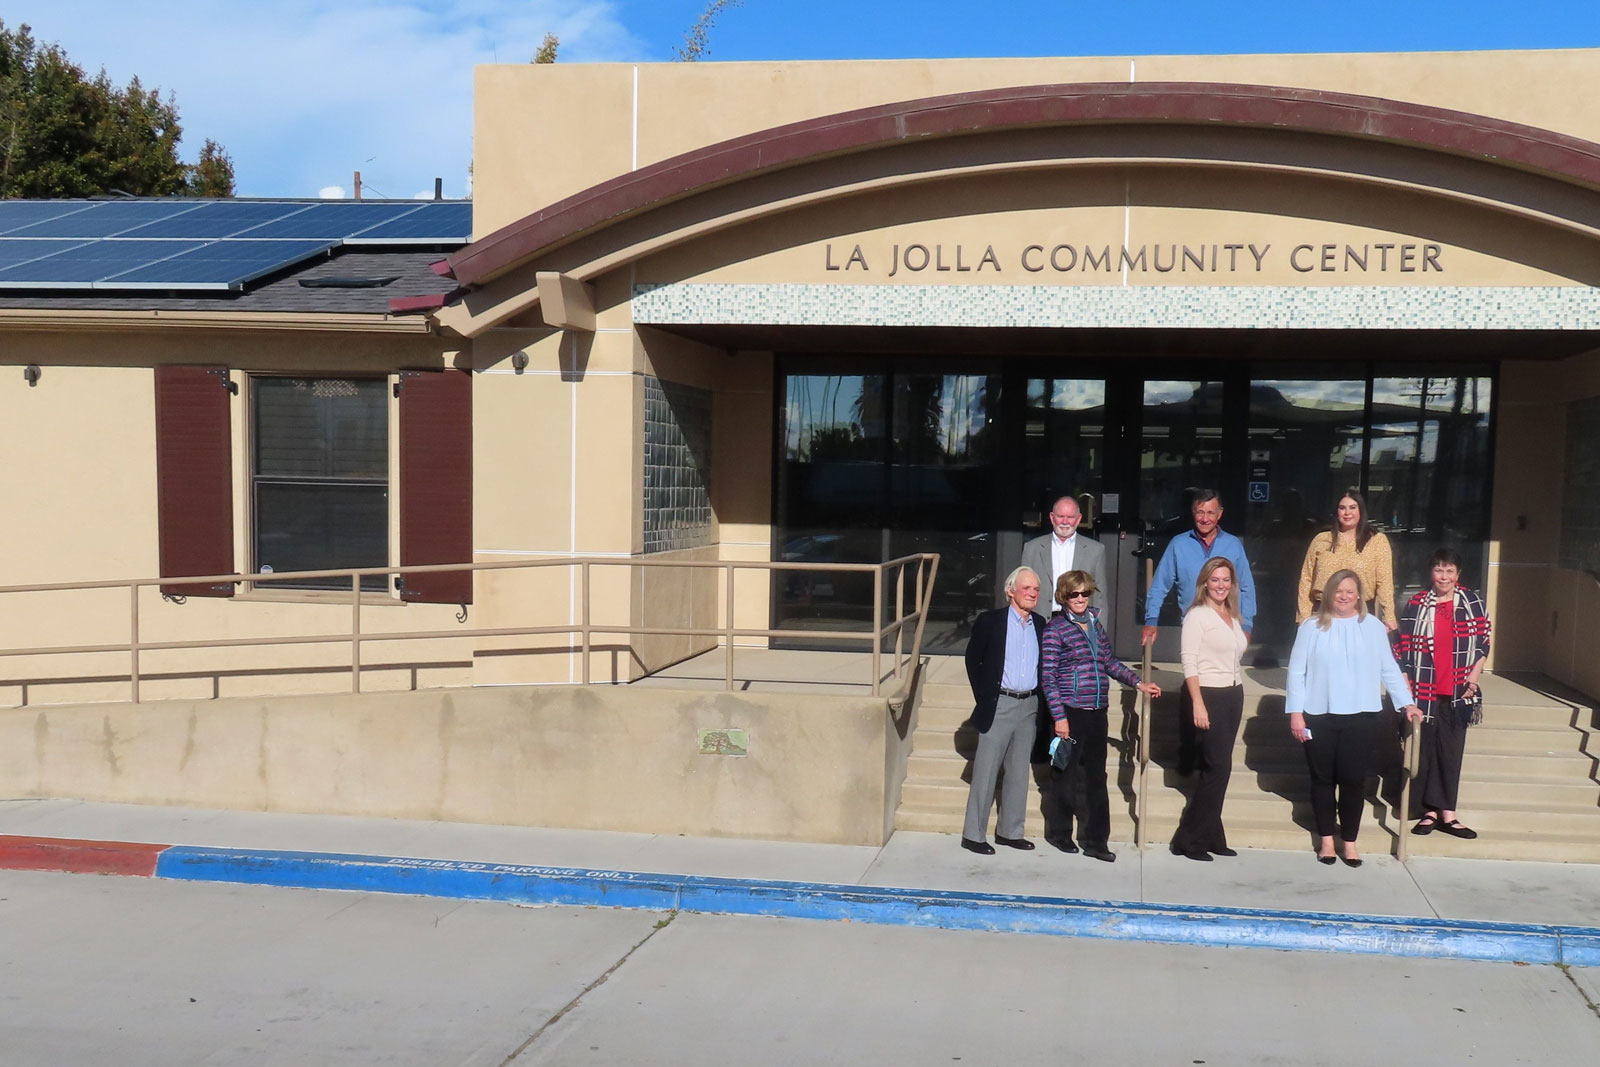 The Sahm Family Foundation board of directors stands in front of the La Jolla Community Center with a view of its new rooftop solar panels